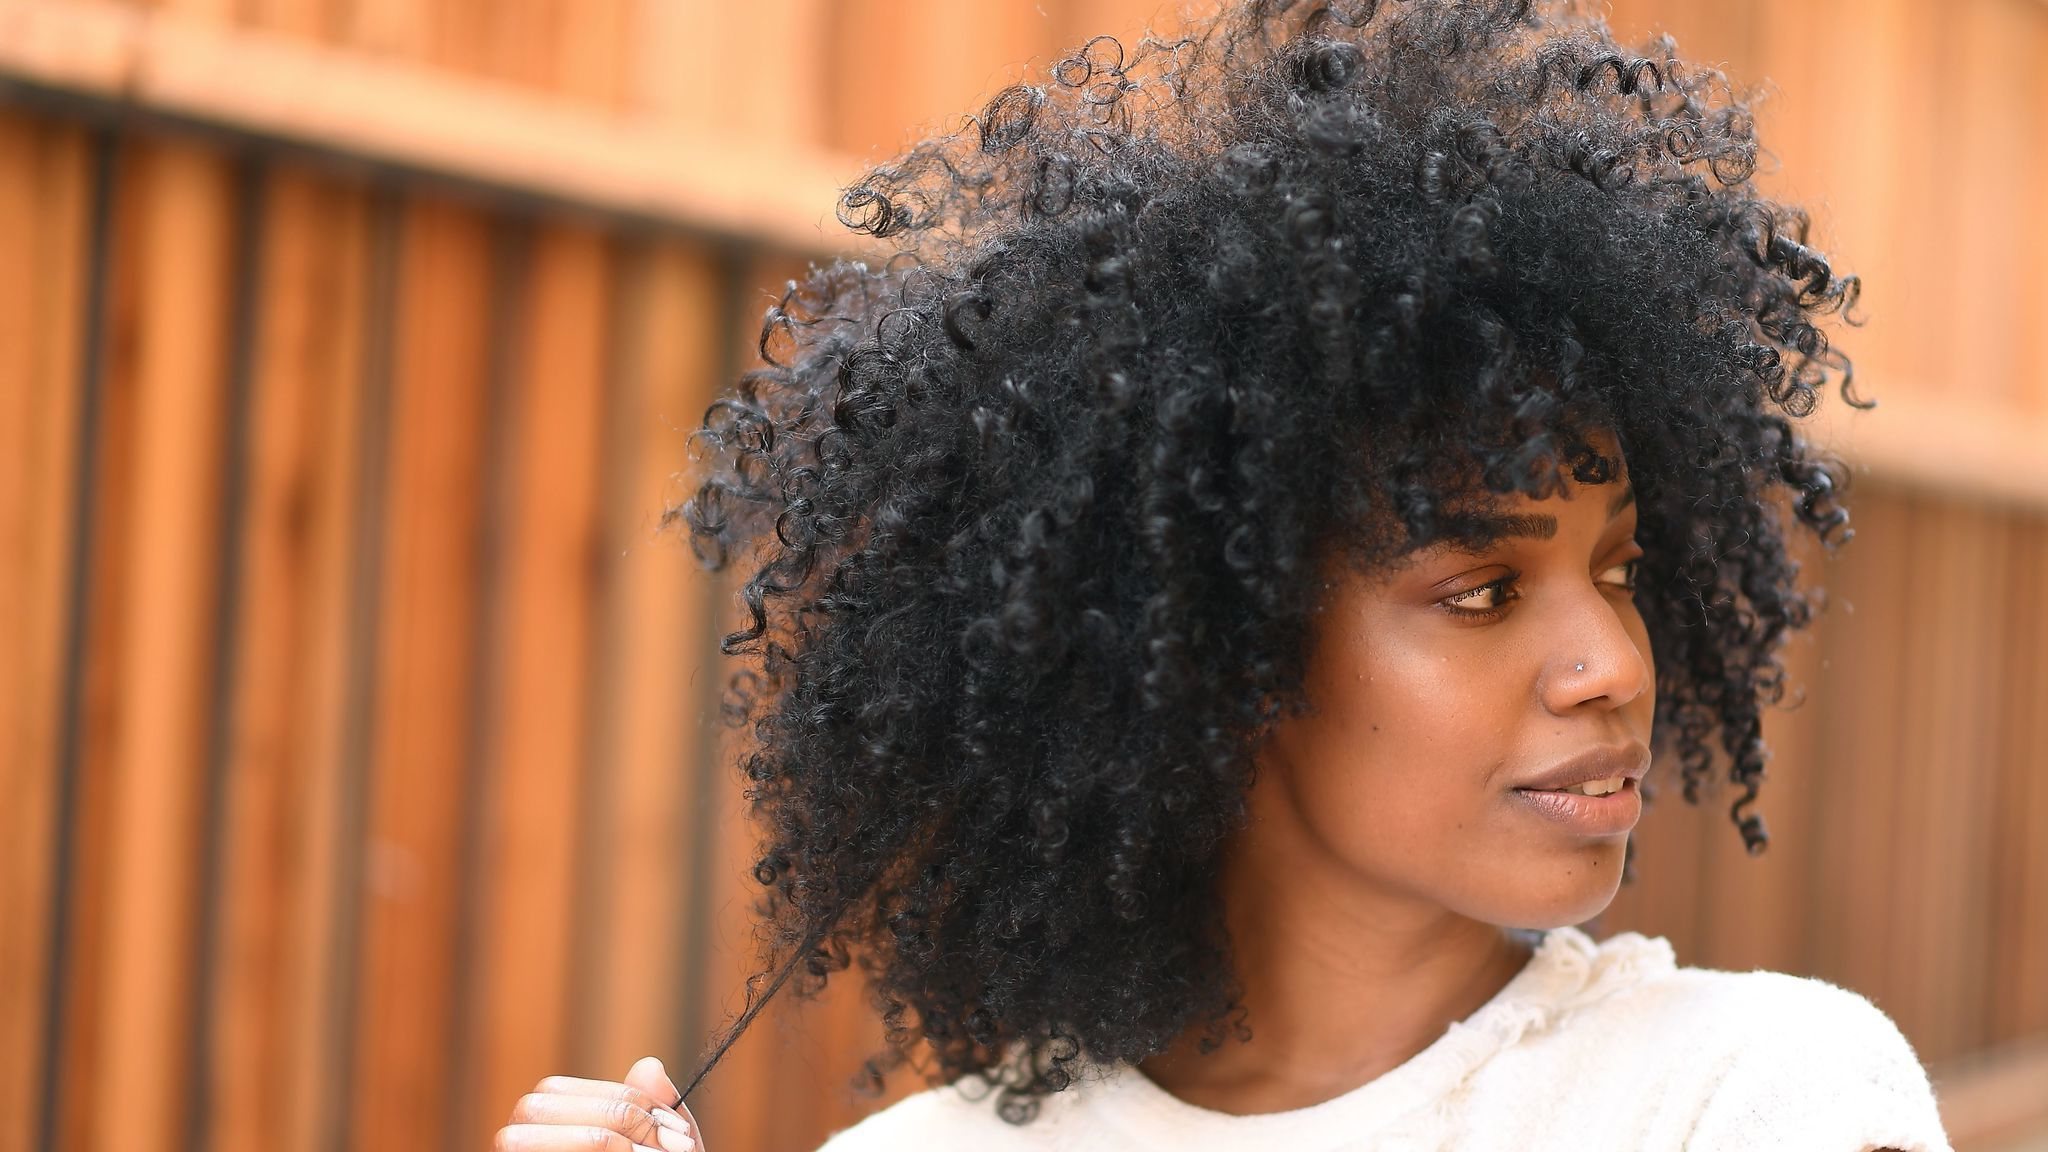 Most Current Medium Hairstyles For African Hair For African American Natural Hairstyles For Medium Length Hair (View 4 of 20)